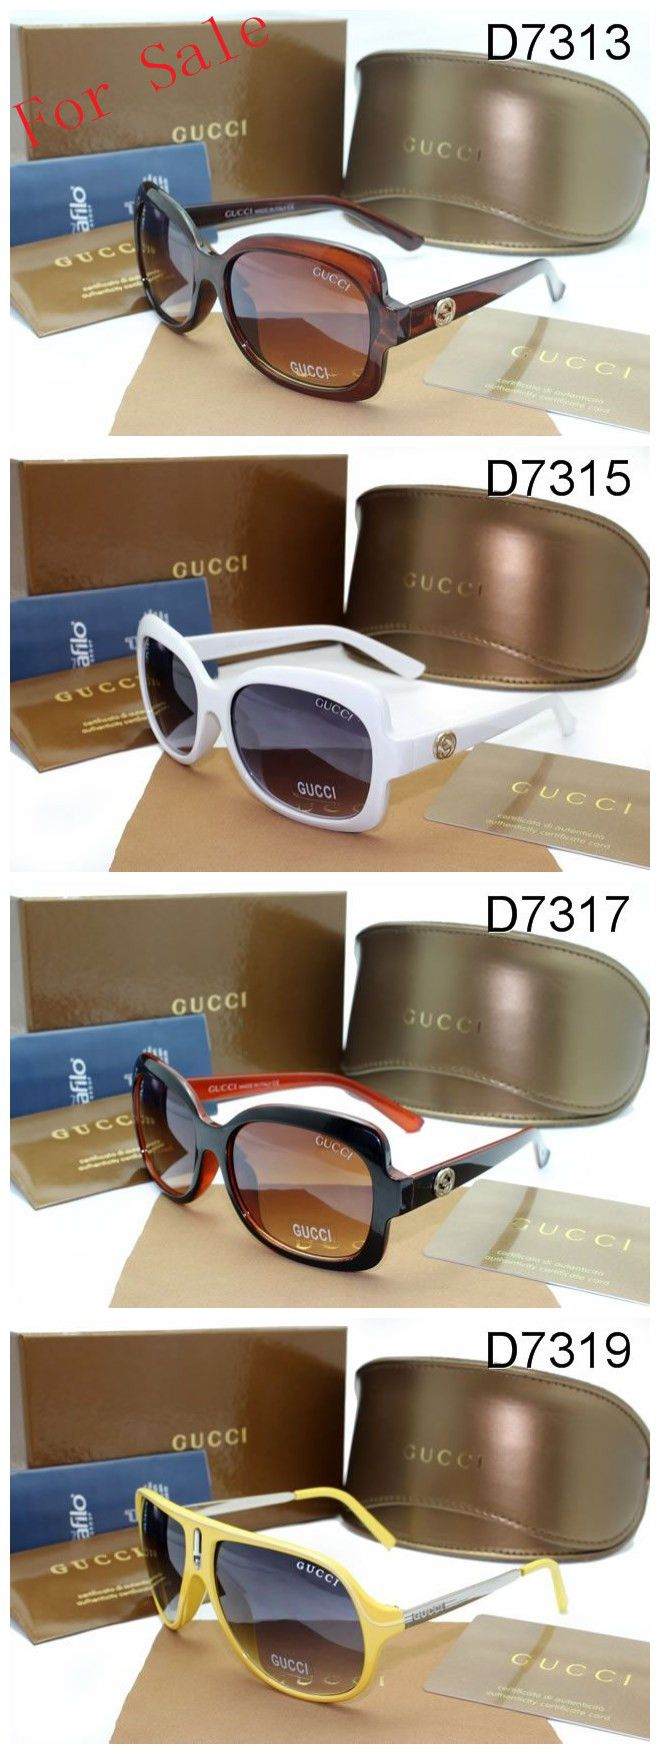 cheap gucci sunglasses discount gucci sunglasses for mens womens online shop gucci eyeglassesgucci glasses